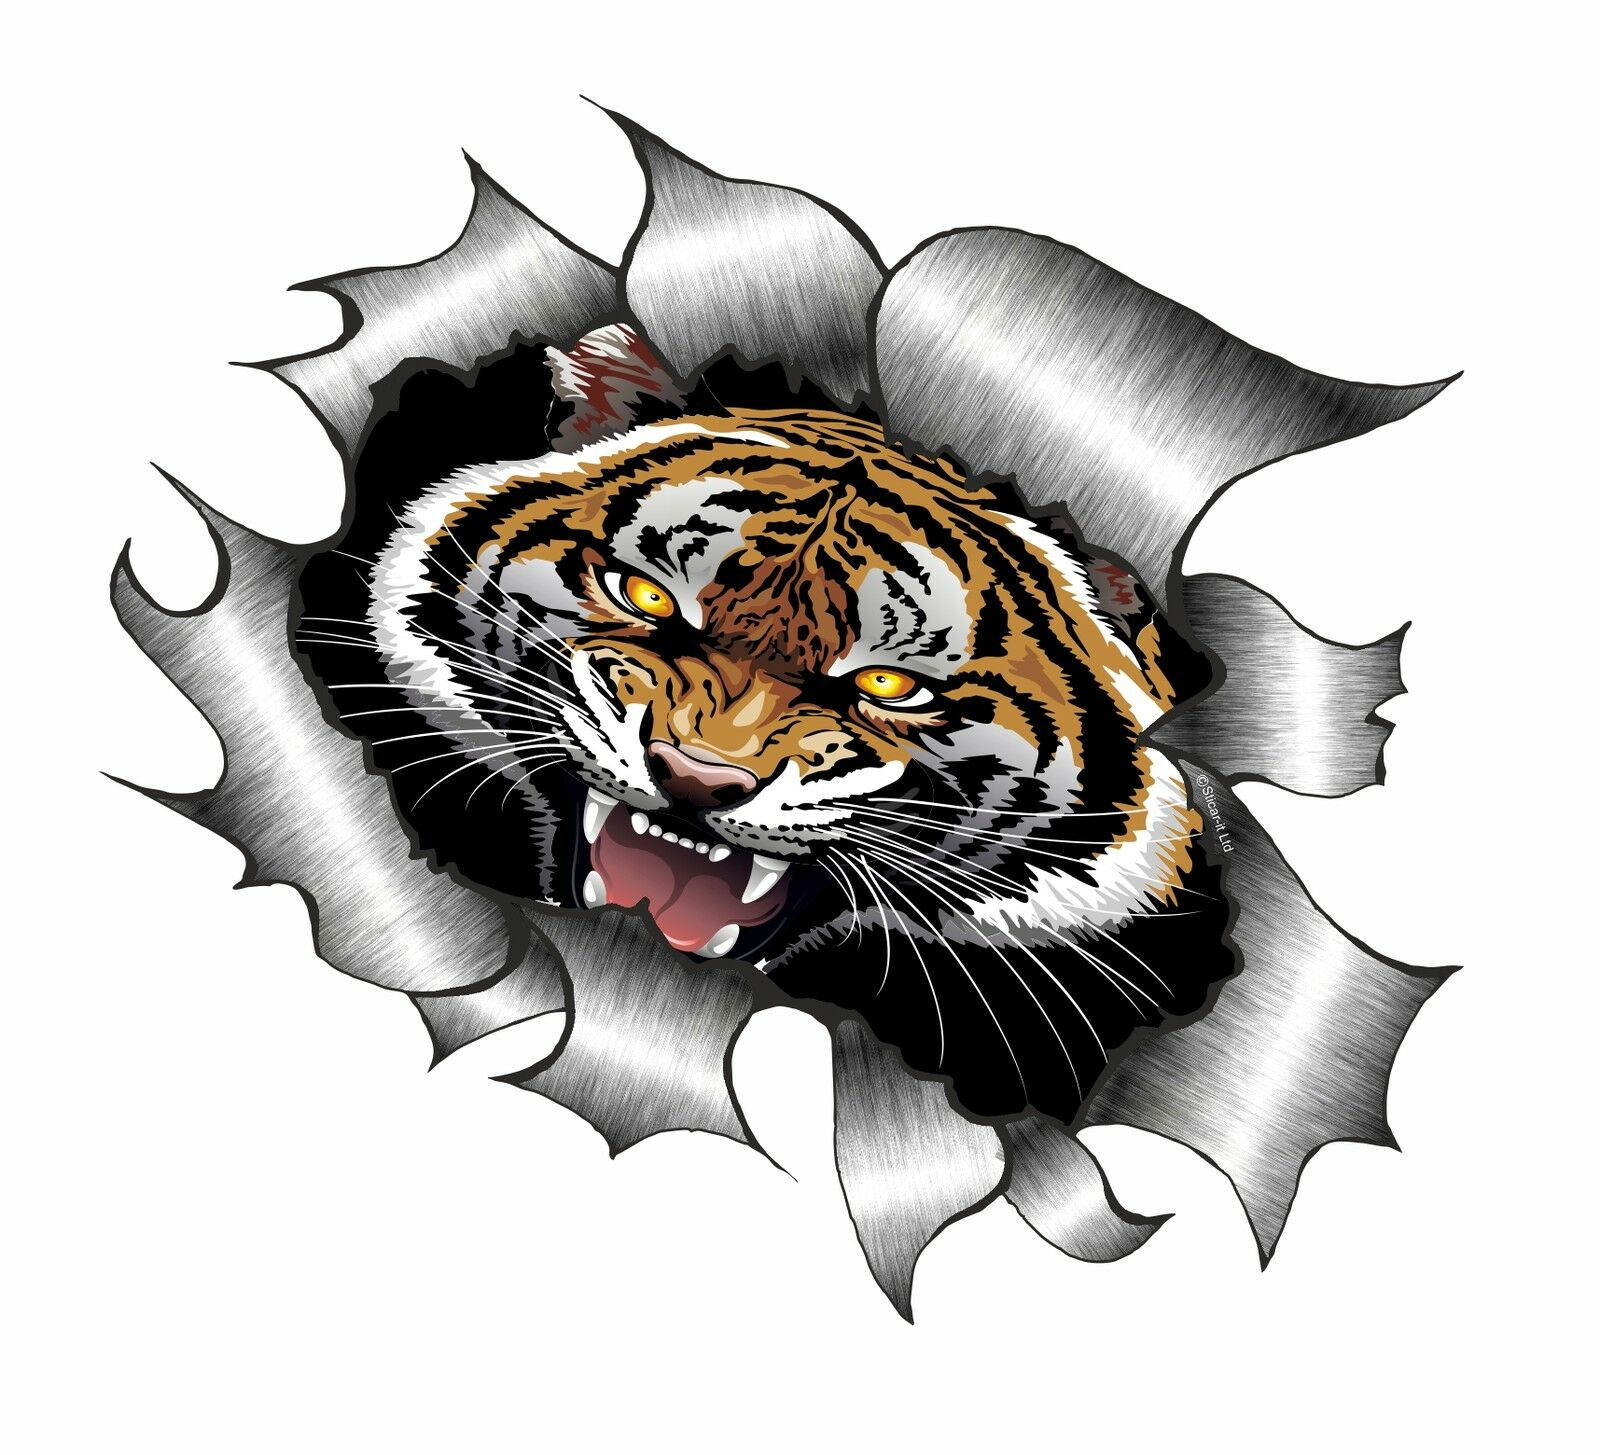 LARGE Ripped Torn Metal Look Design Roaring Bengal Tiger Design - Car sticker designripped open gash torn metal design with evil eye monster looking